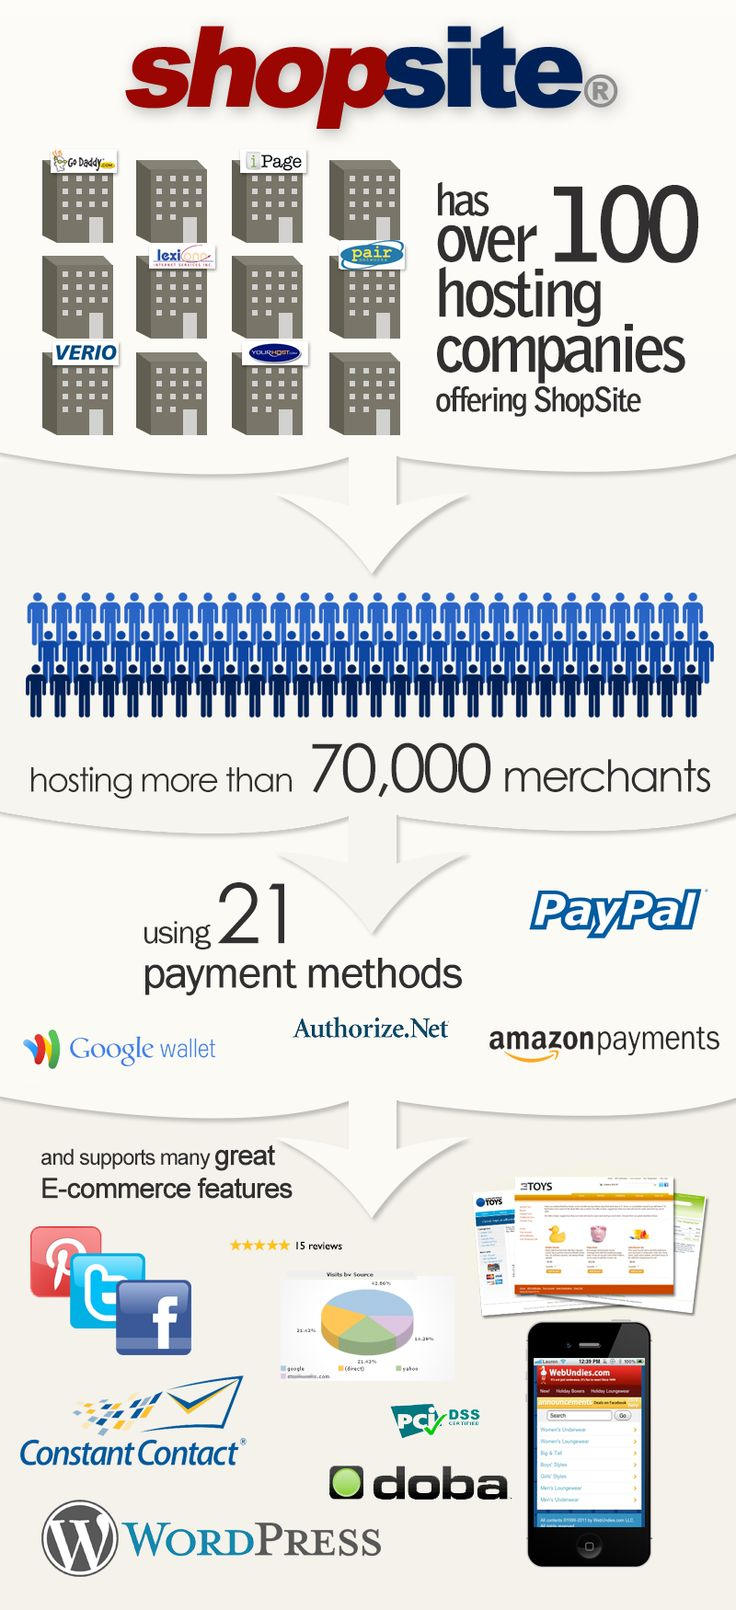 ShopSite Shopping Cart E-commerce Software Infographic